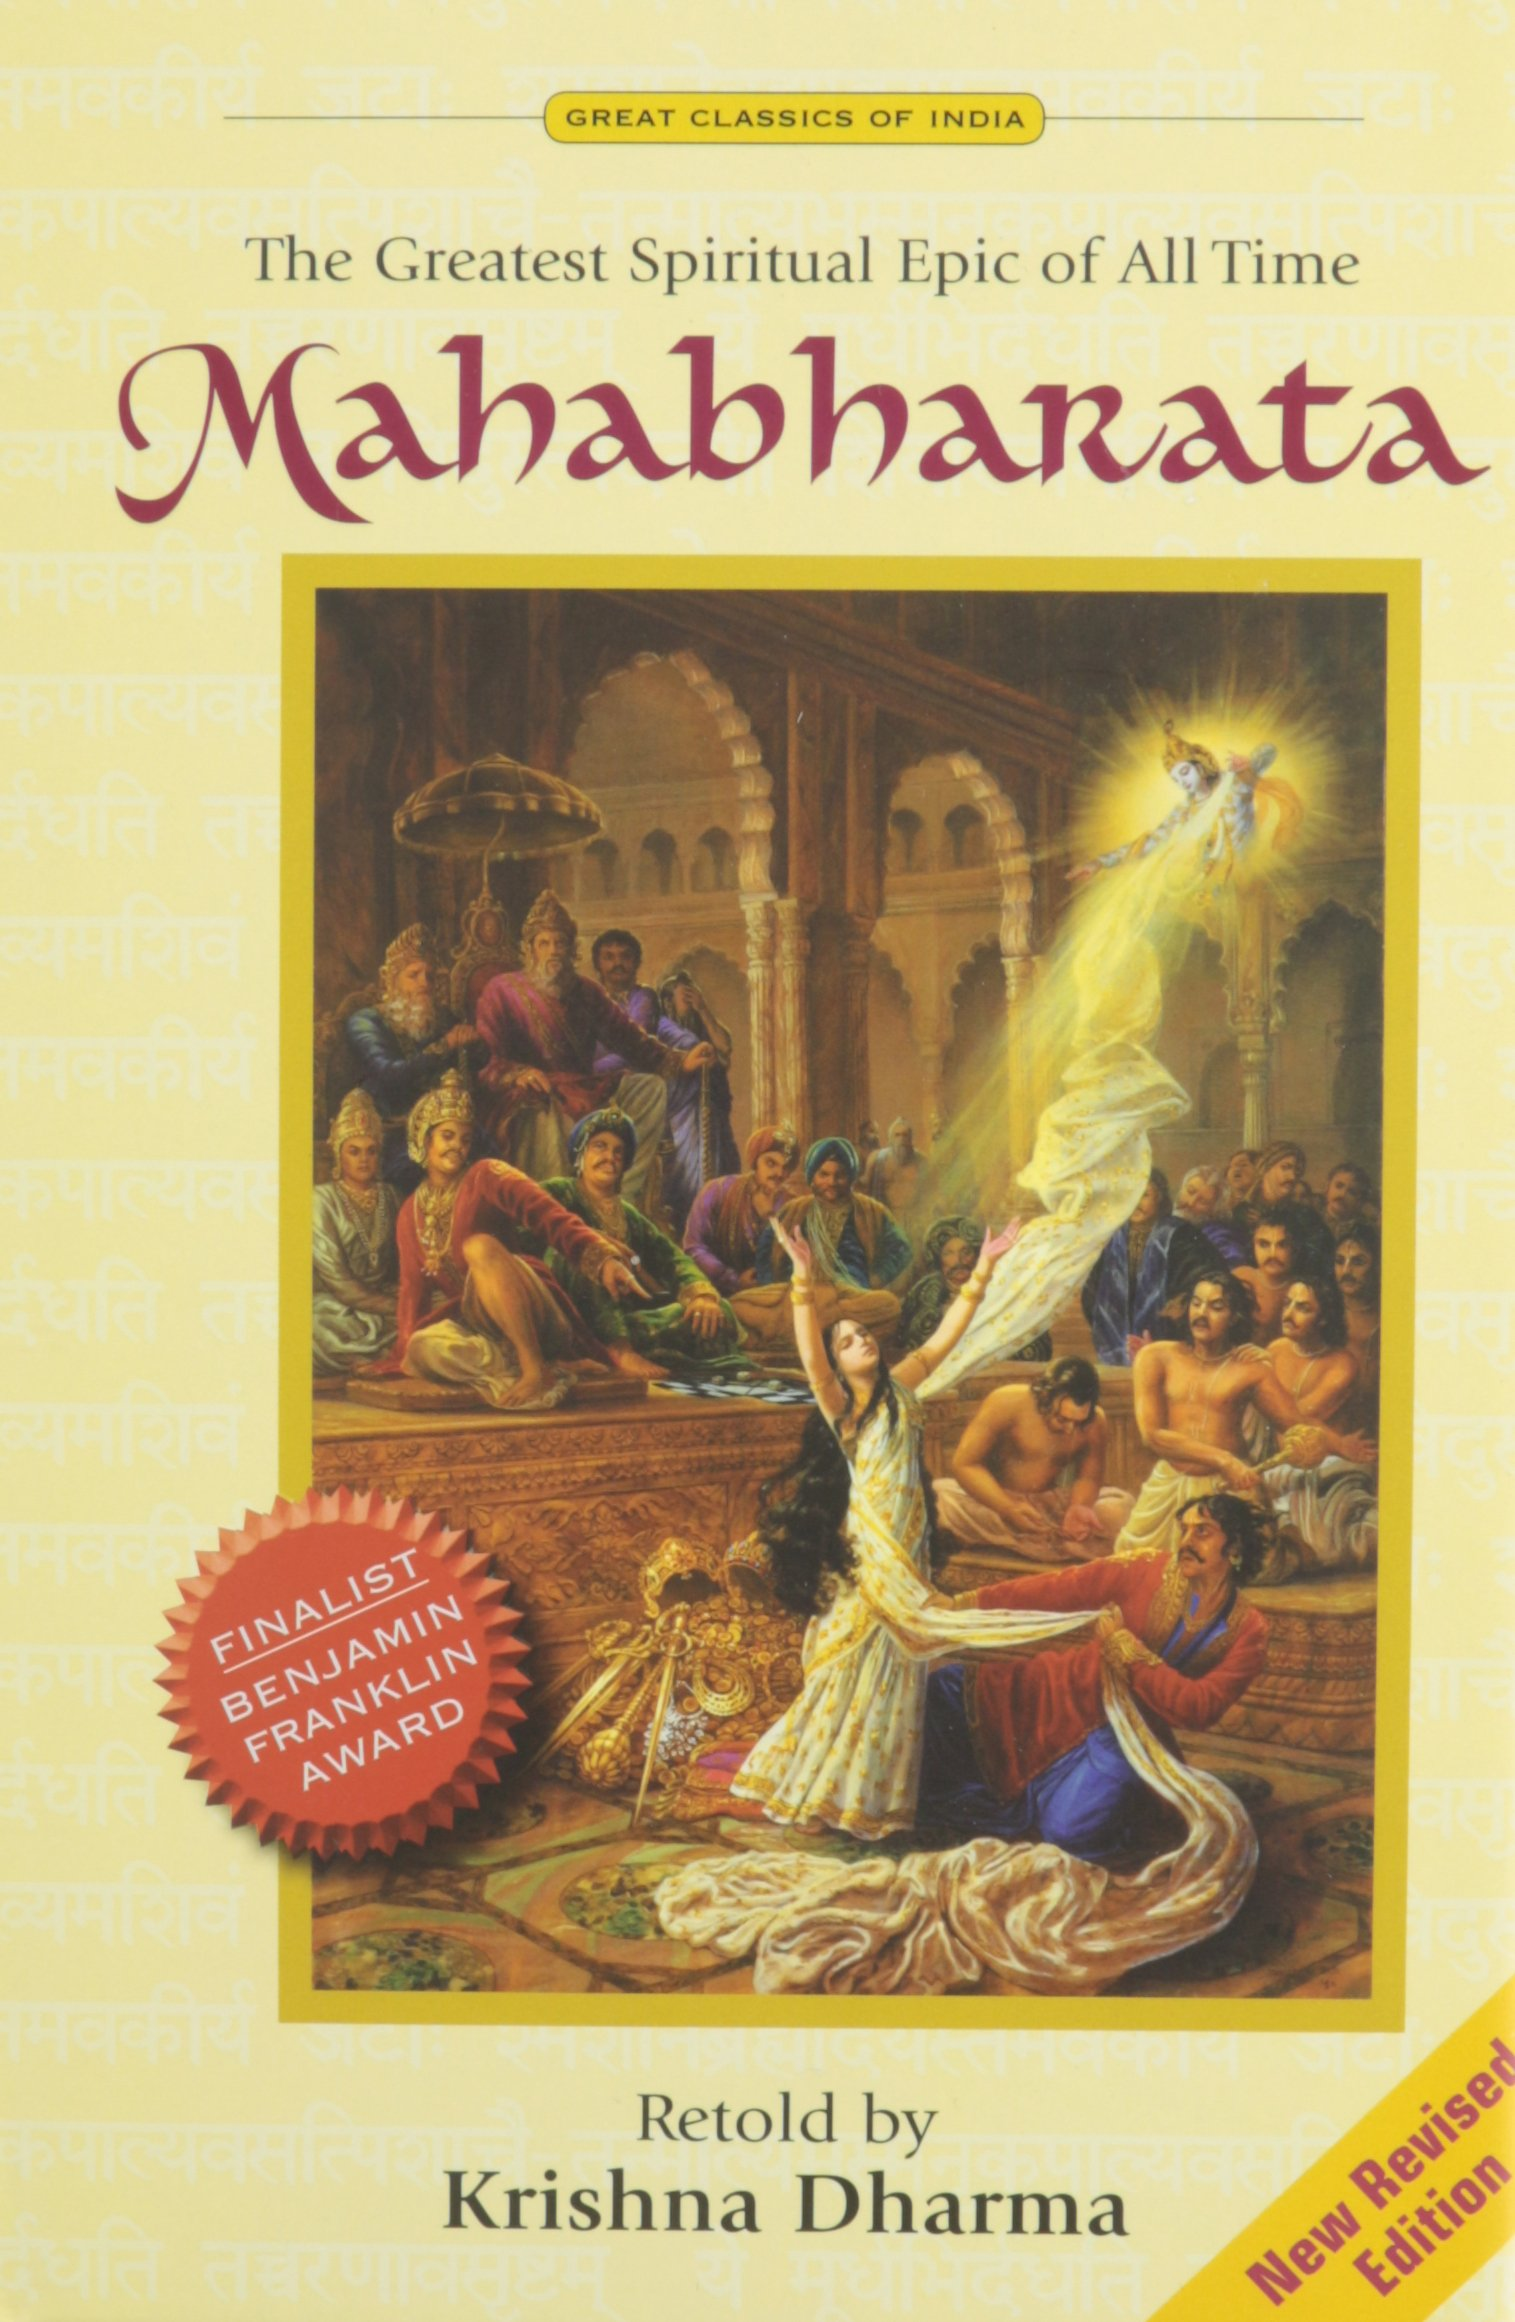 mahabharata the greatest spiritual epic of all time krishna dharma 9781887089173 amazon com books